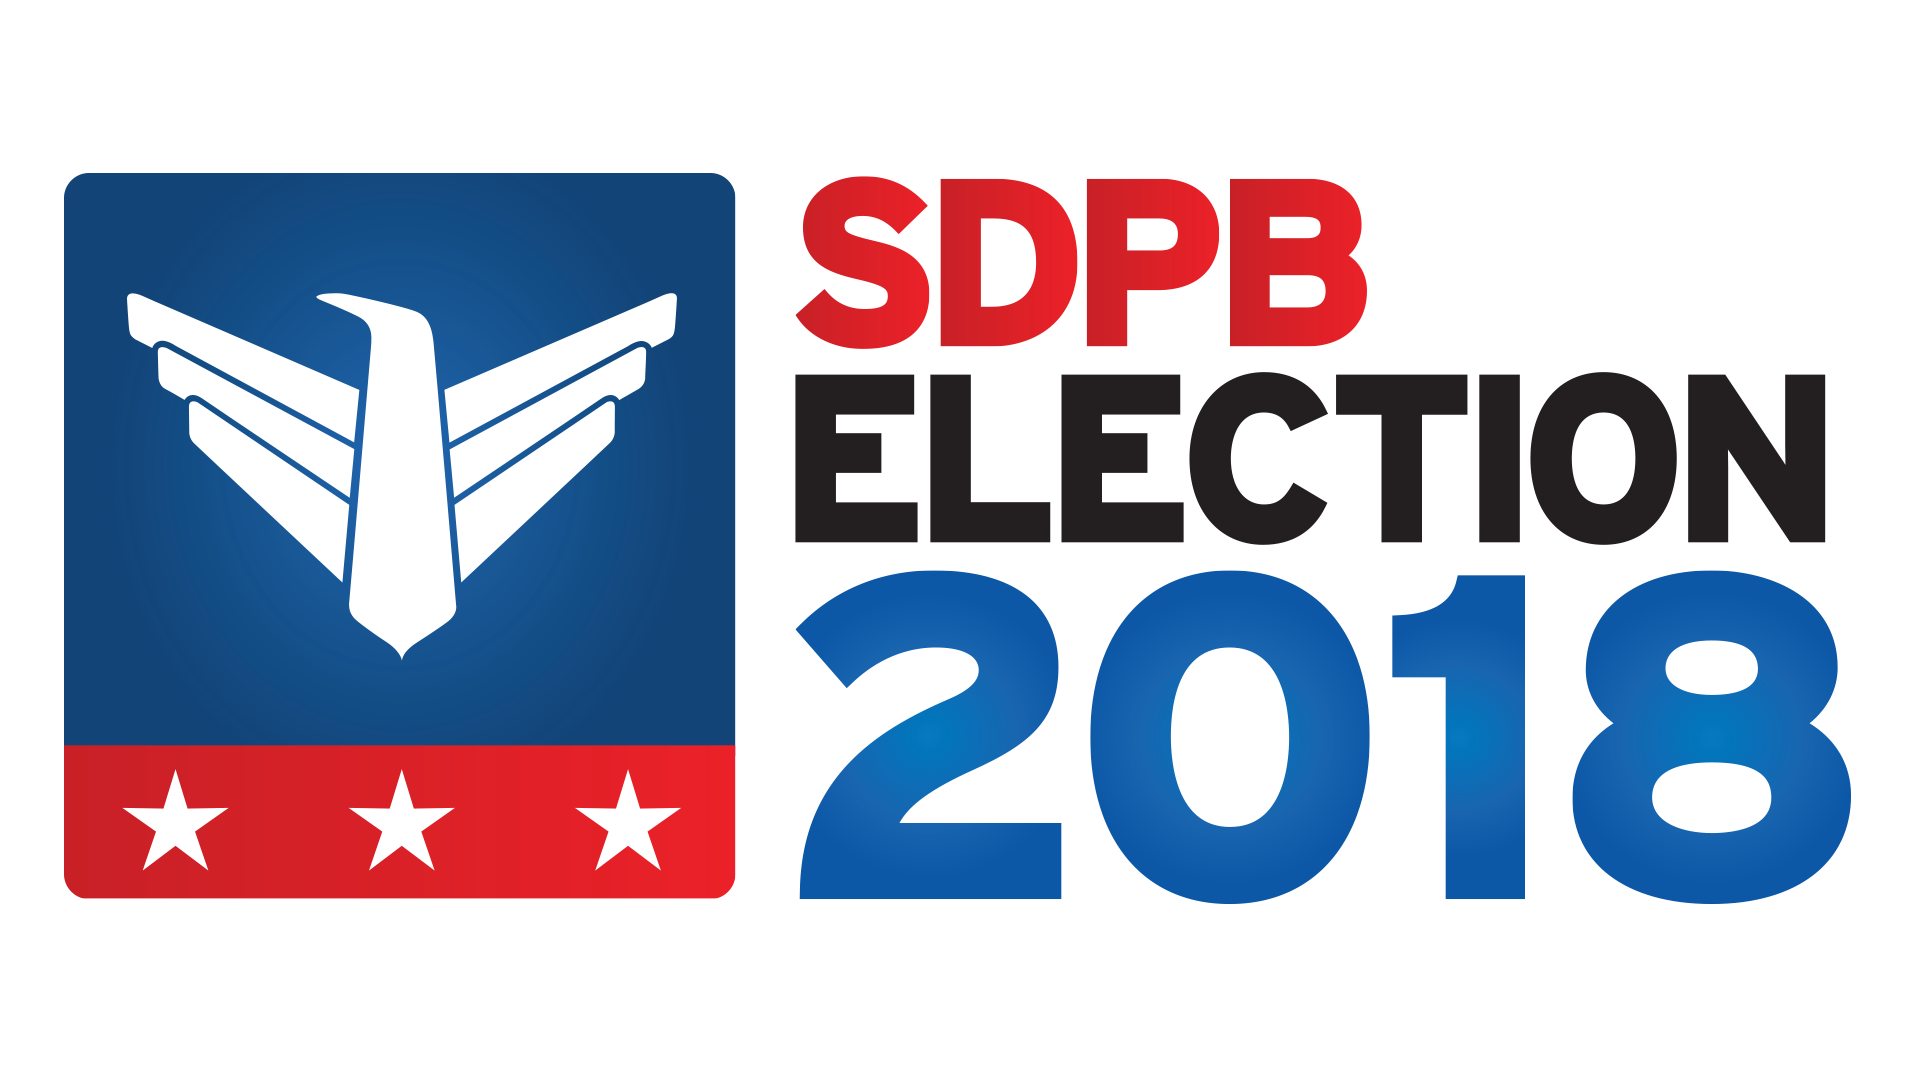 SDPB Election 2018